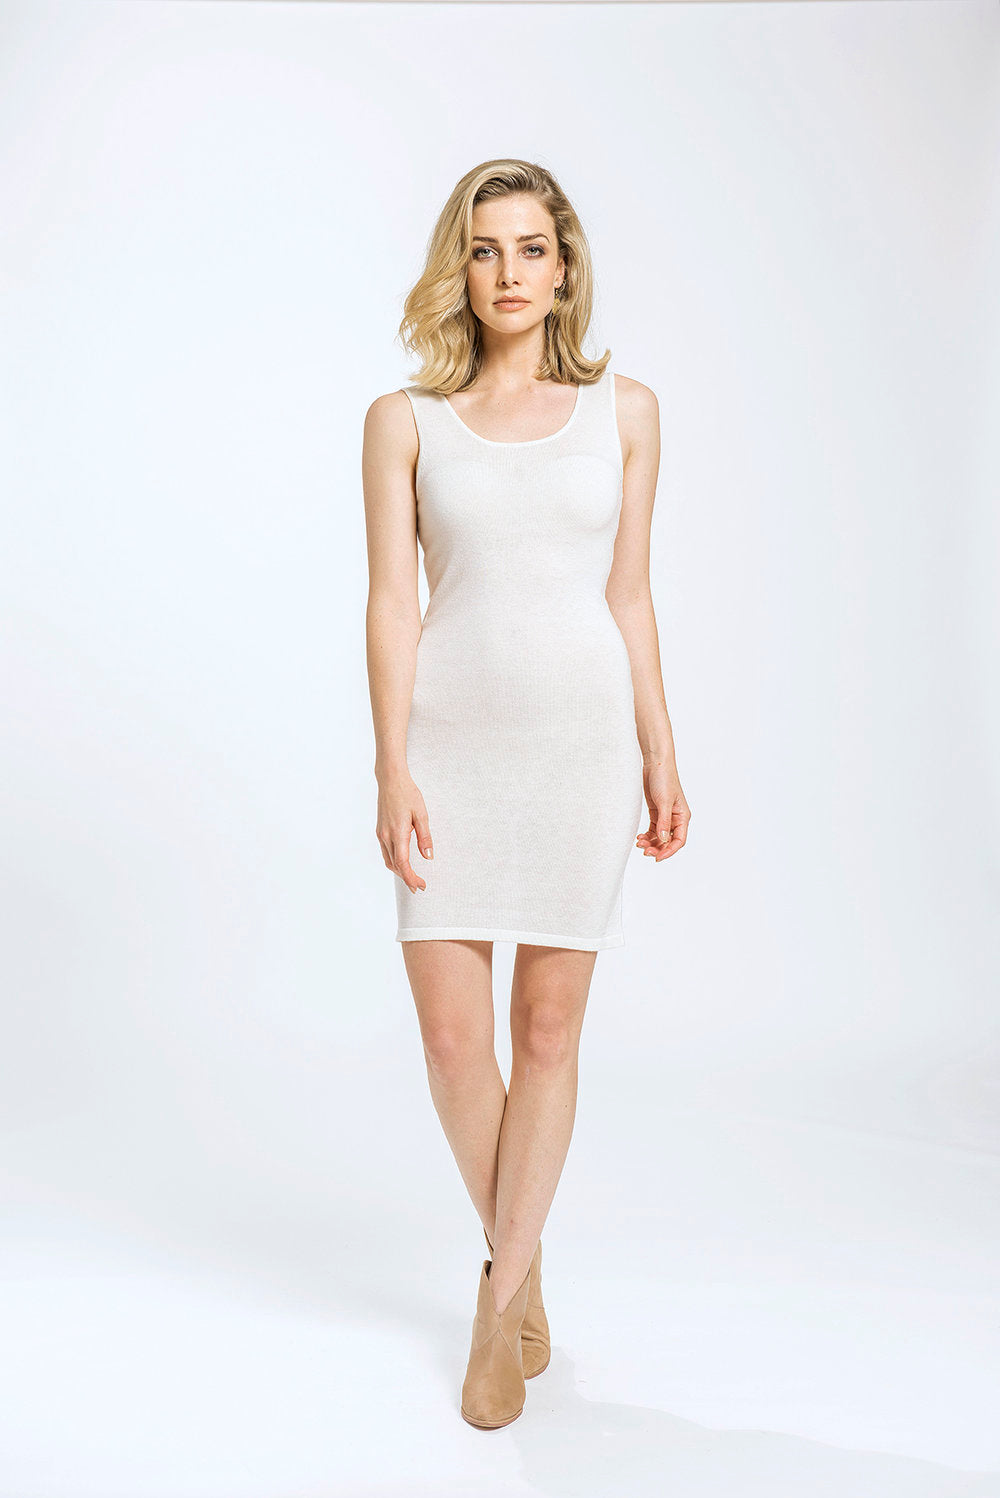 Wool Slip- Cream Knit 2.jpg